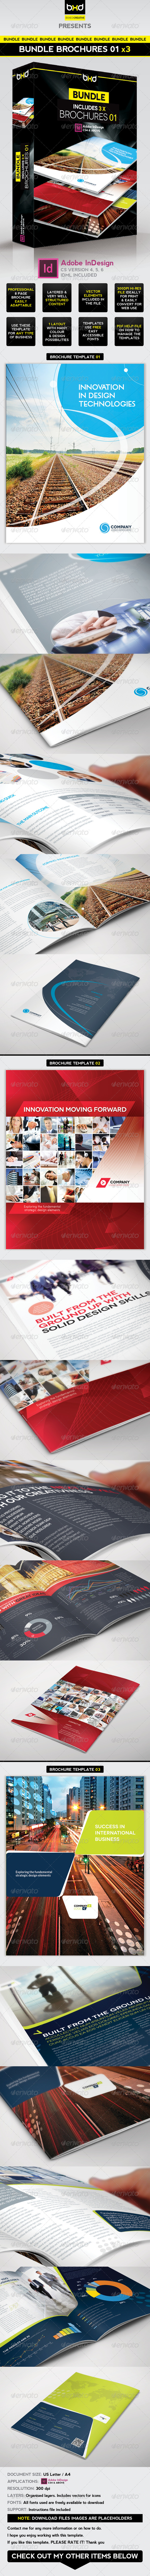 GraphicRiver Brochures Bundle InDesign Layout 01 5079798